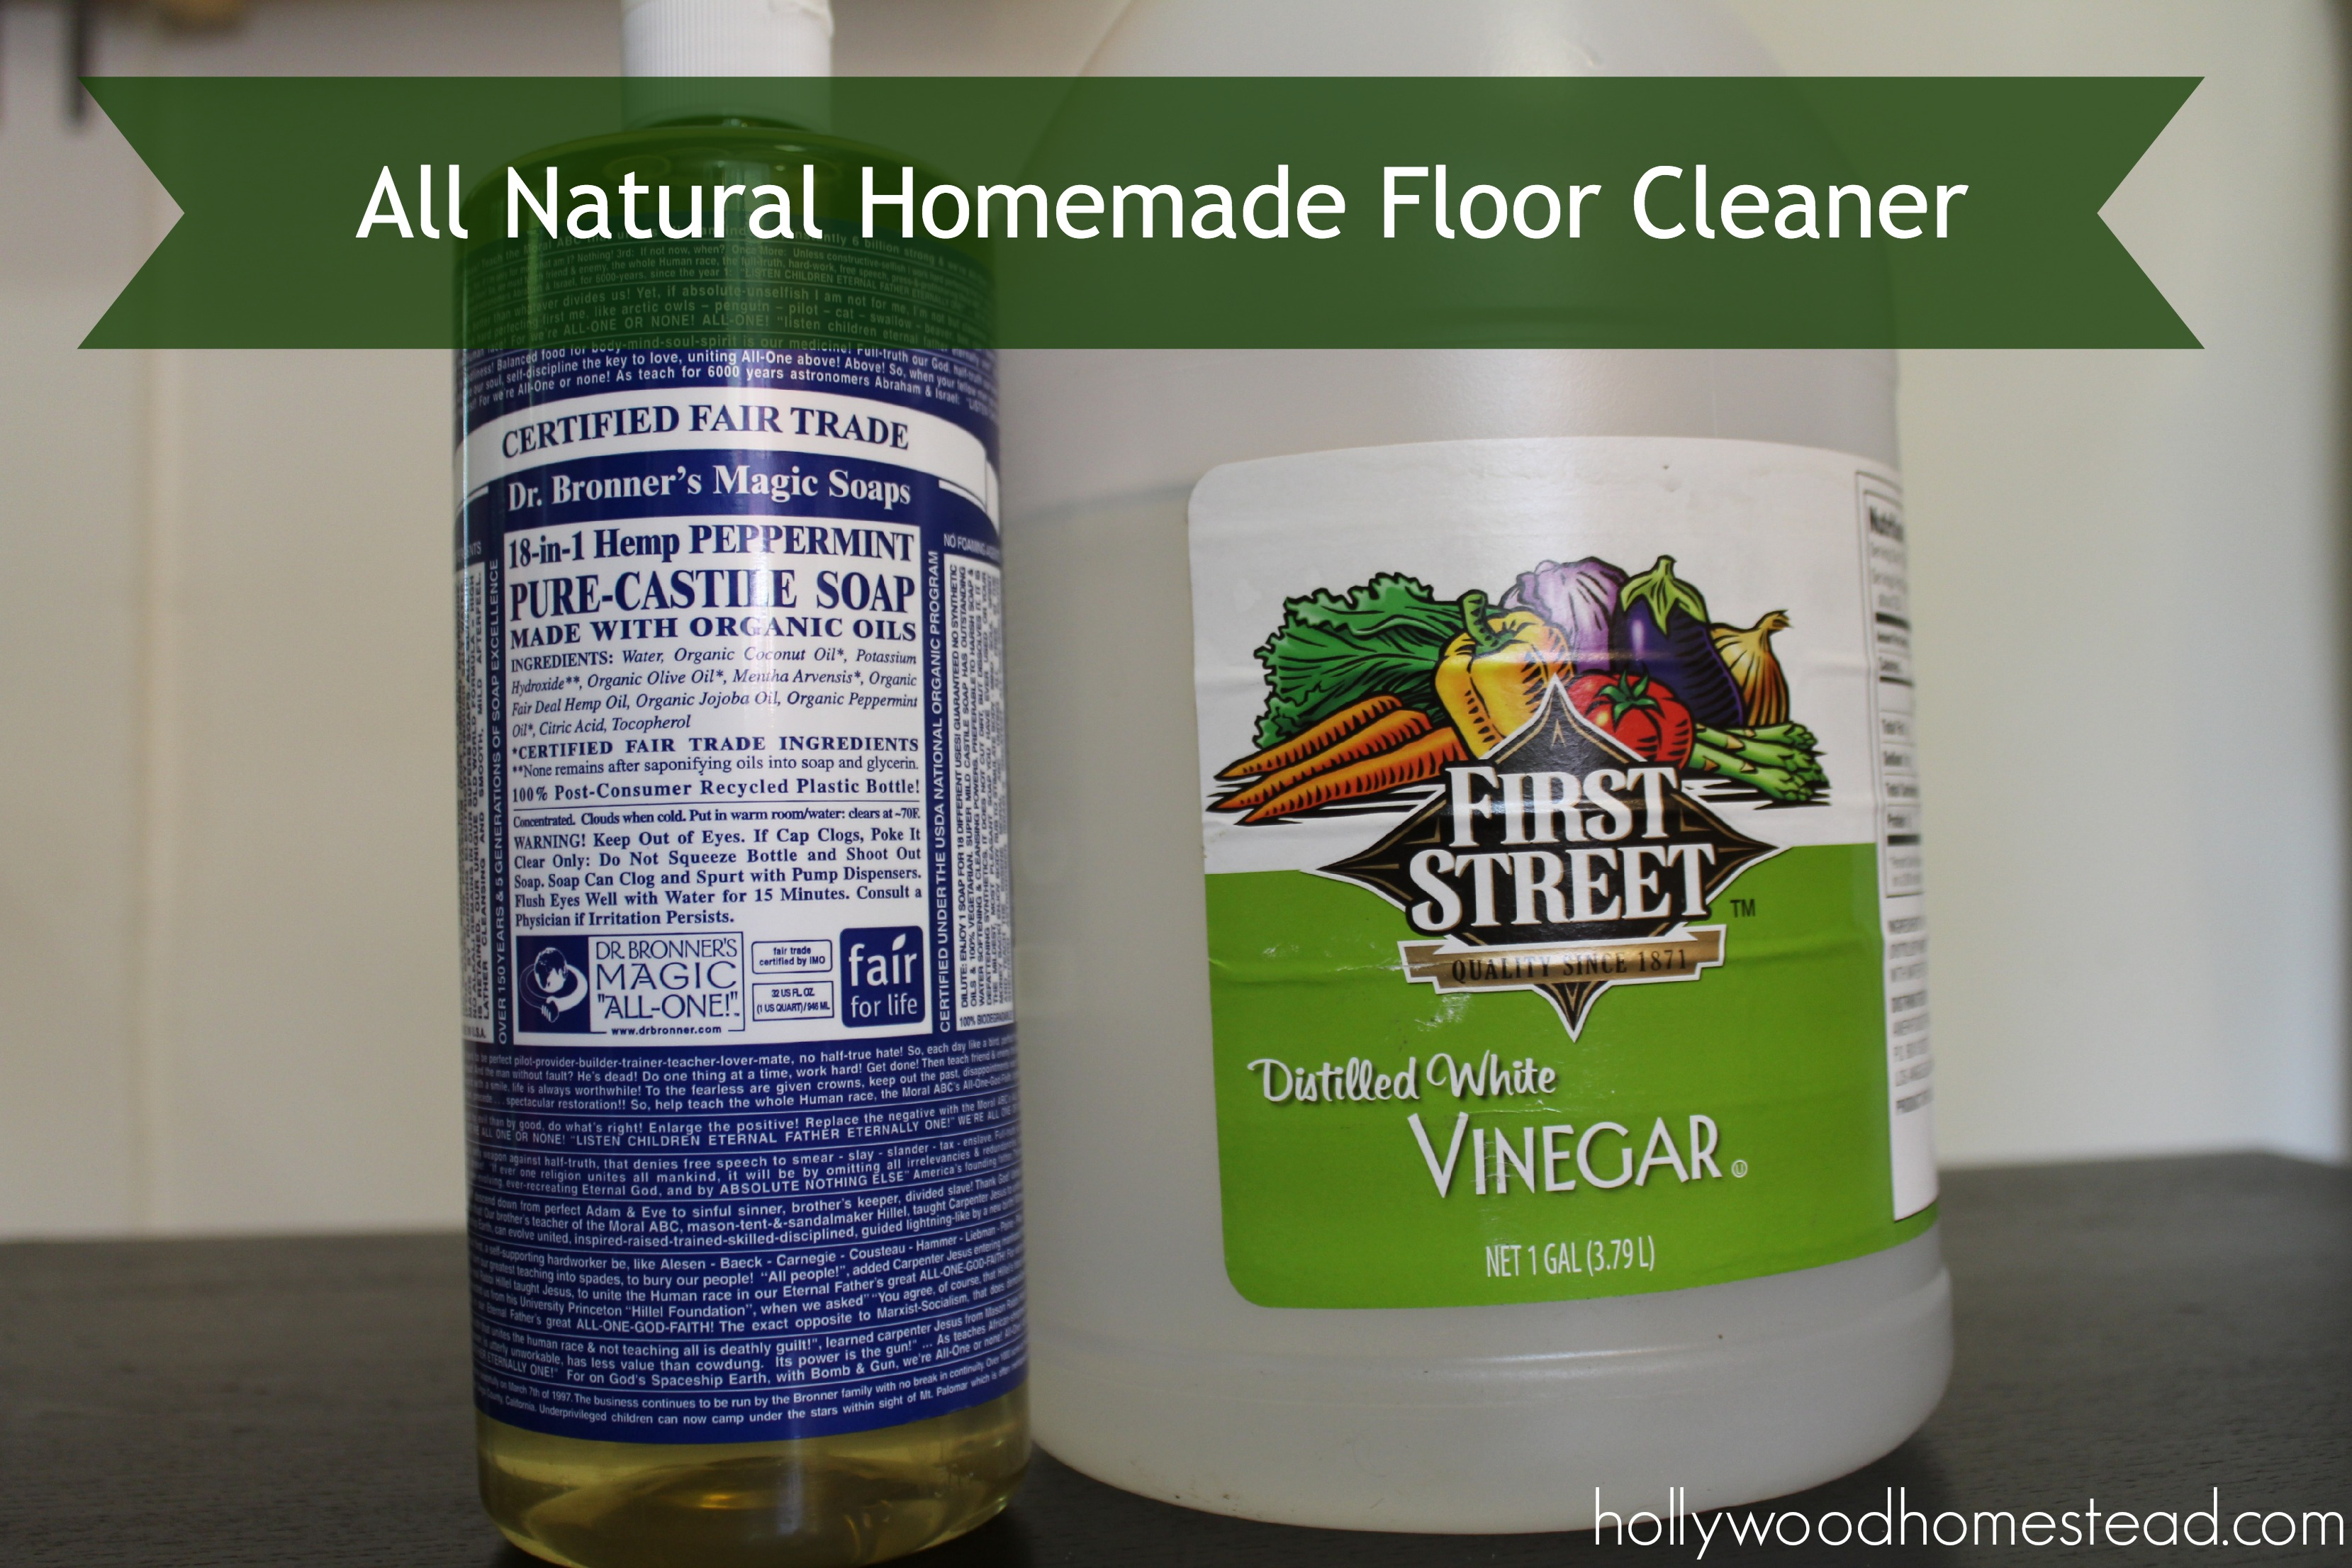 All Natural Homemade Floor Cleaner Hollywood Homestead